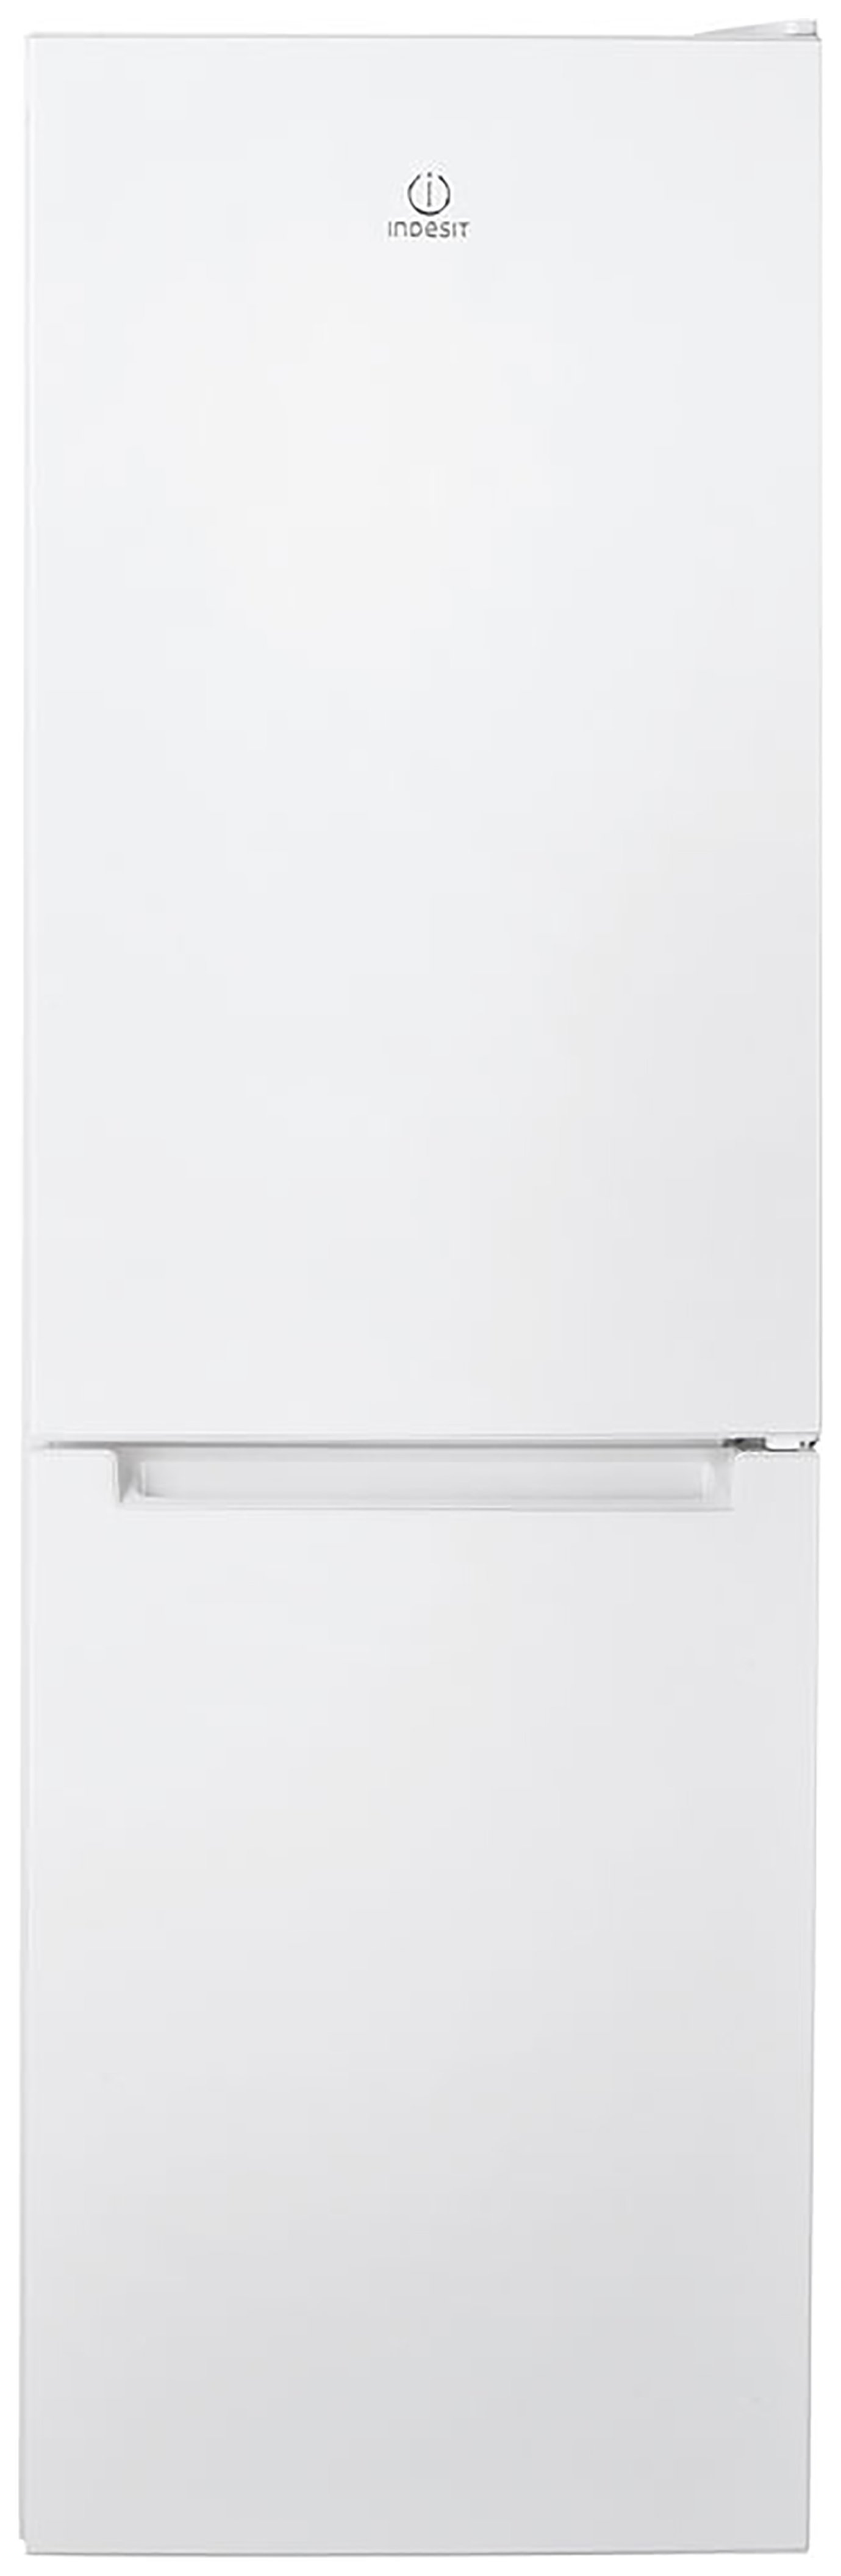 Indesit LR8S1W Fridge Freezer - White Best Price, Cheapest Prices